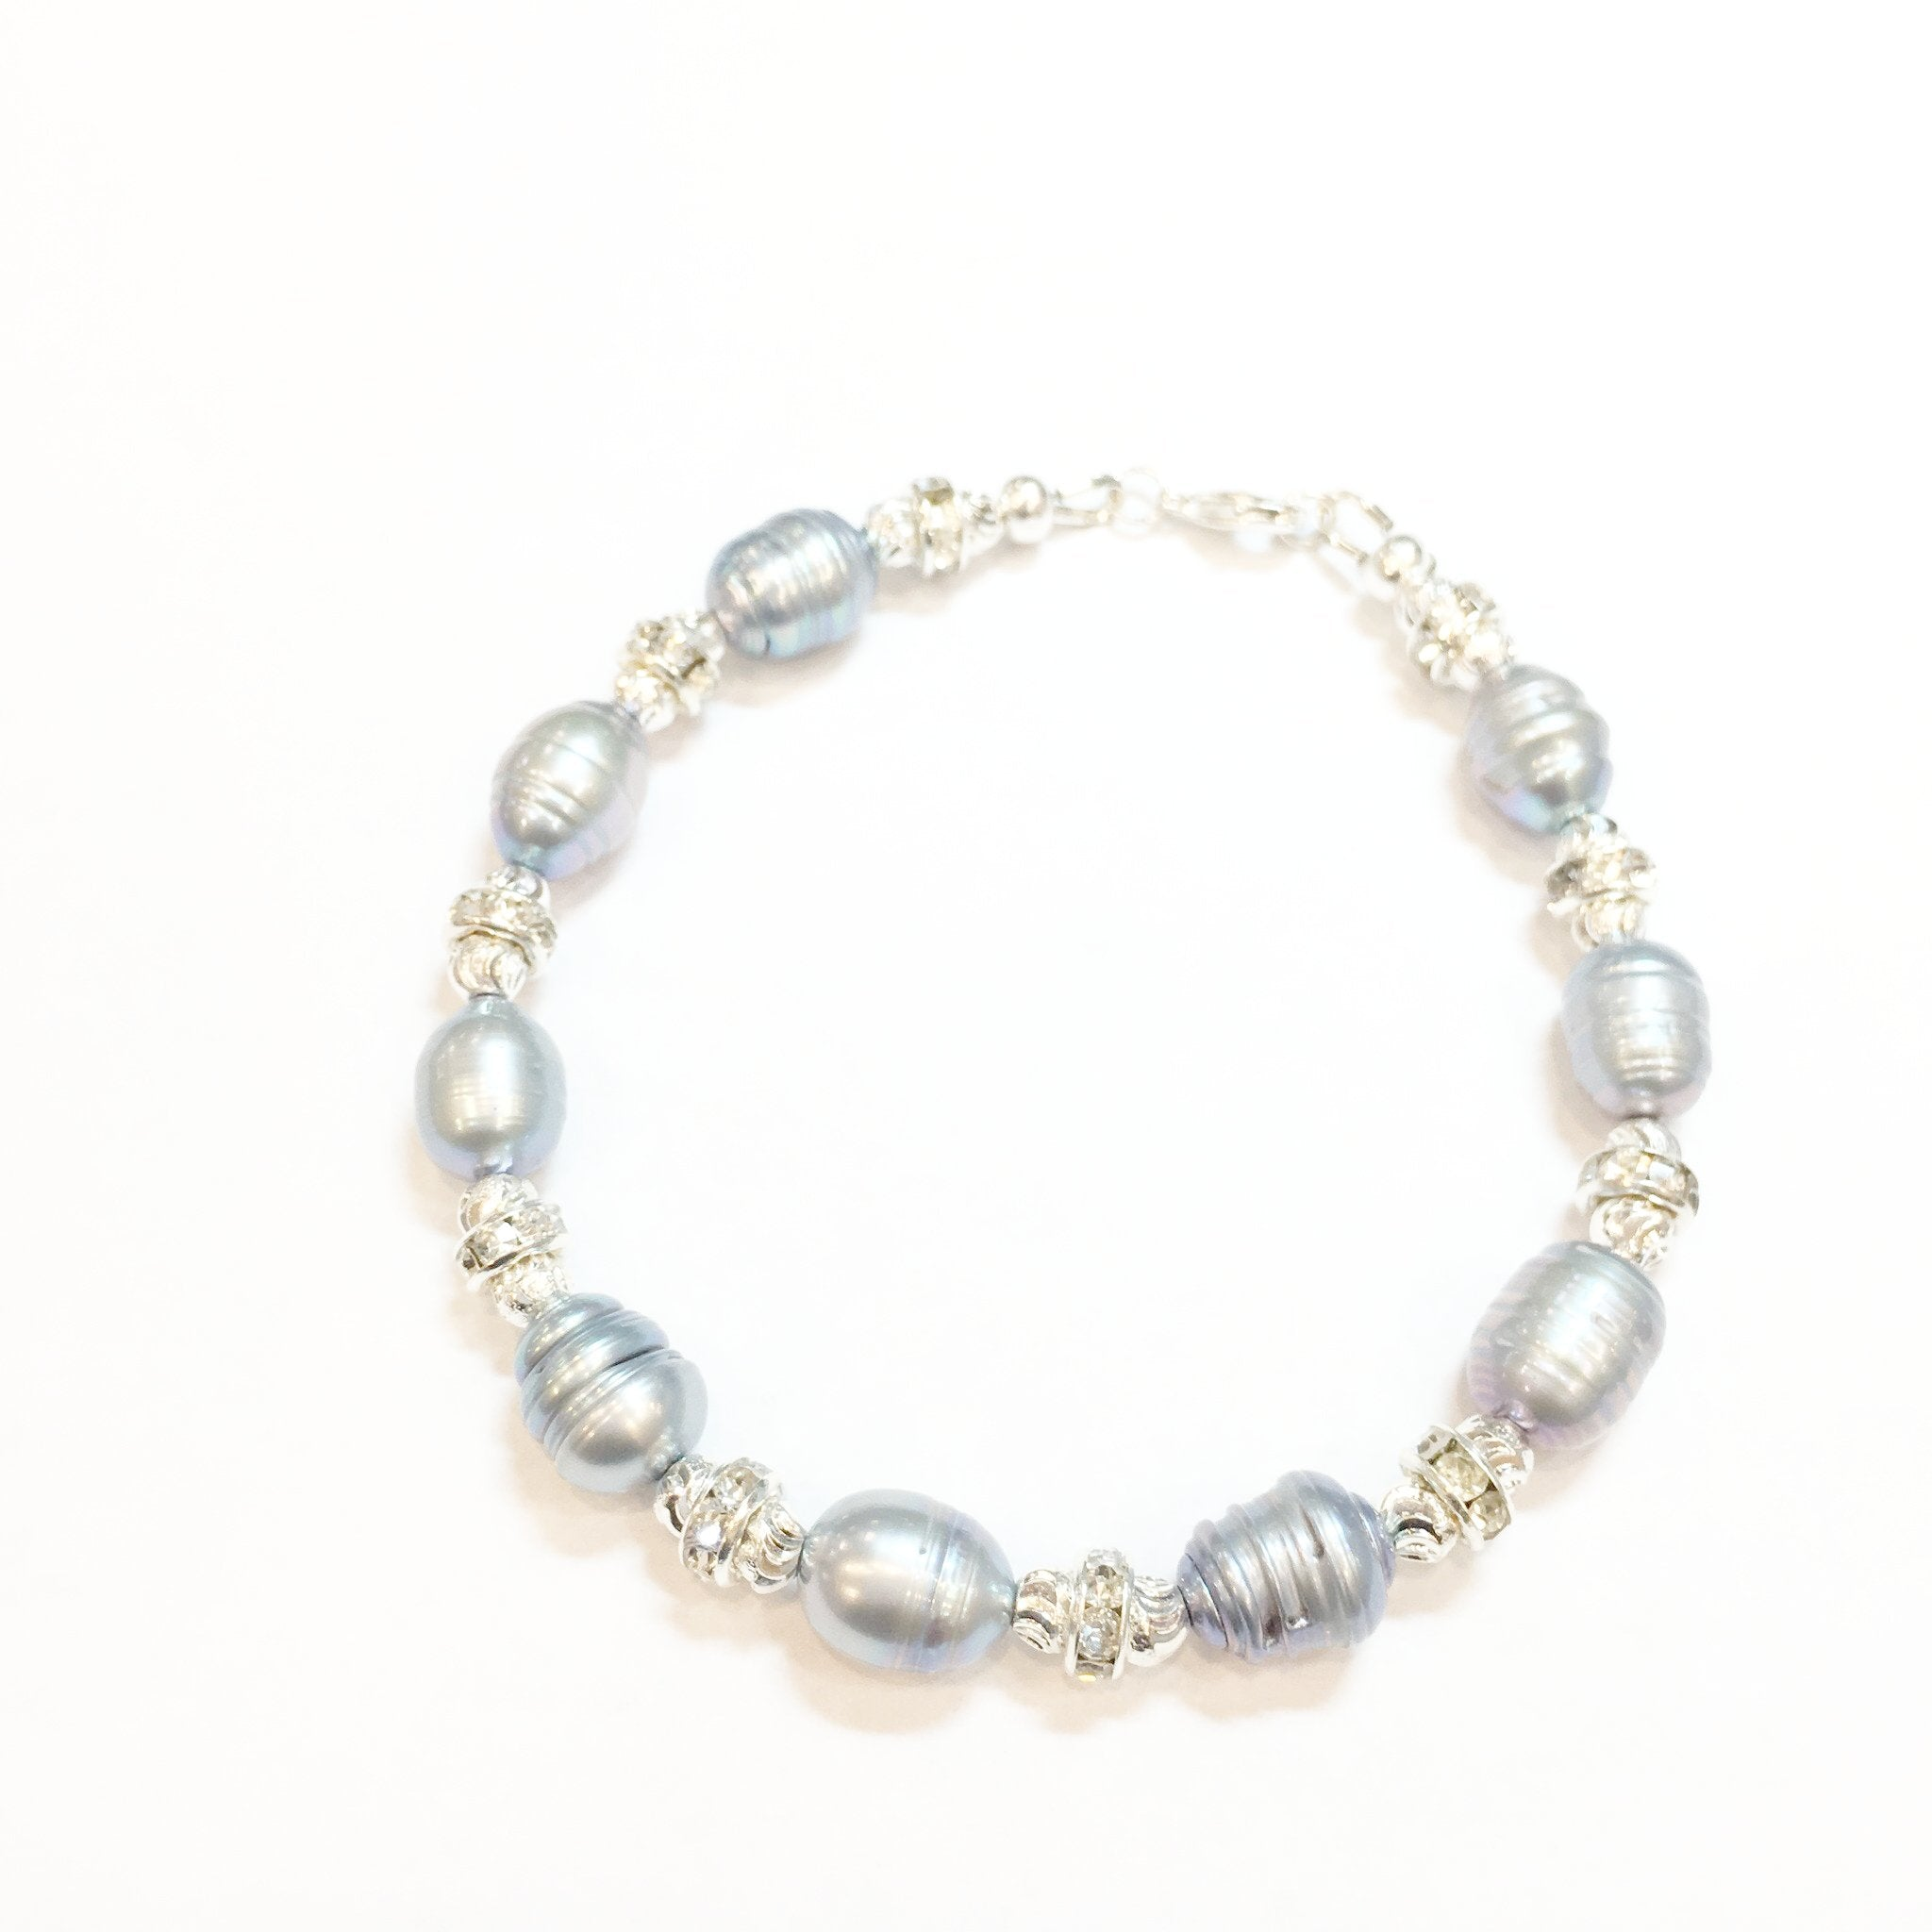 Fresh Water Pearl and Swarovski Bracelet - Real Chic Boutique  - 1